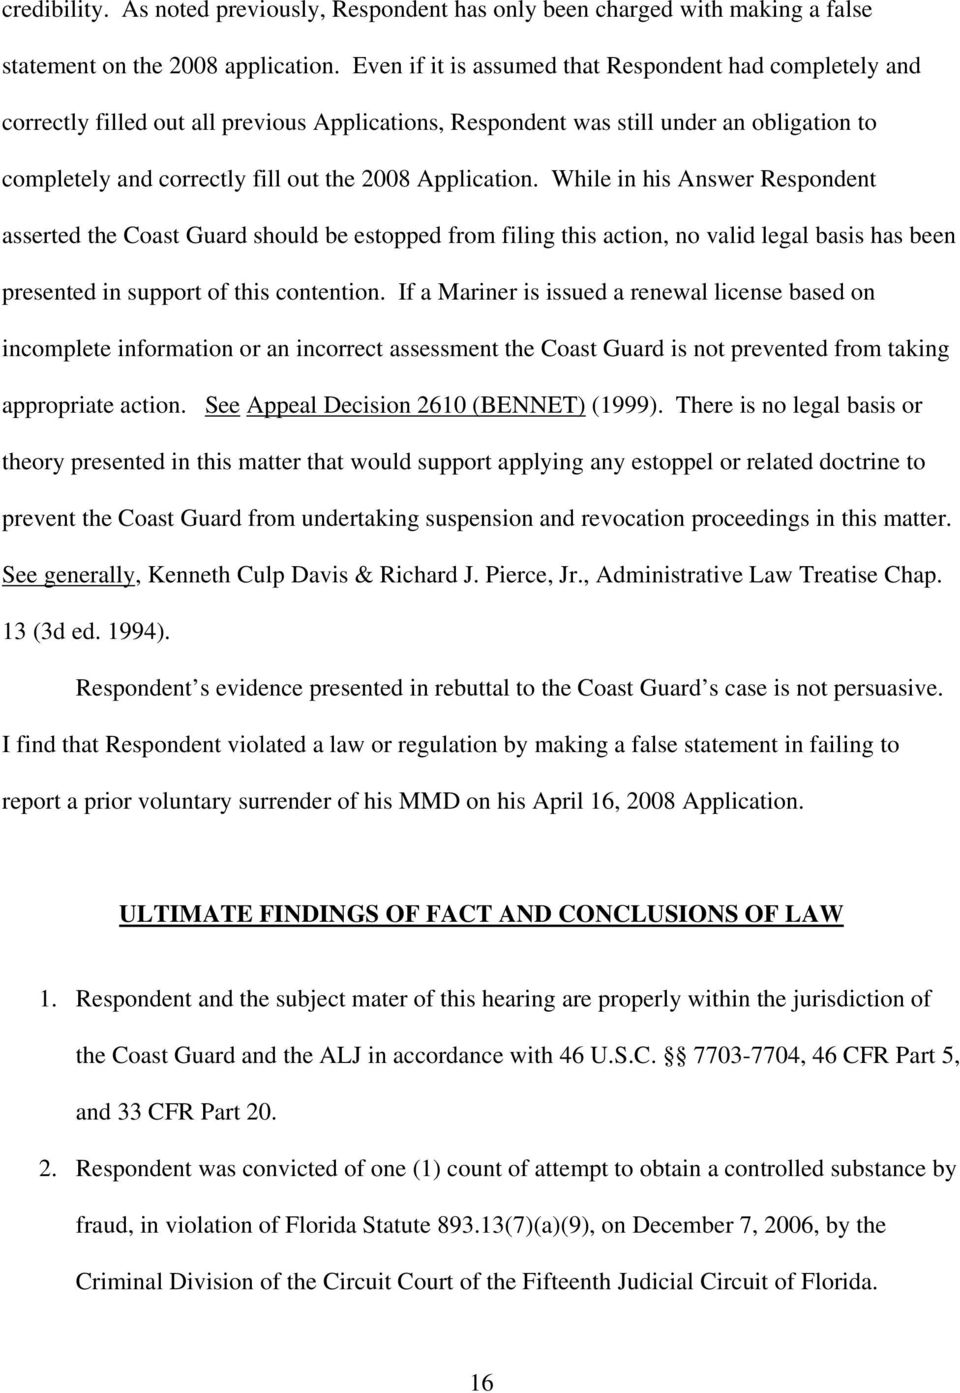 Application. While in his Answer Respondent asserted the Coast Guard should be estopped from filing this action, no valid legal basis has been presented in support of this contention.